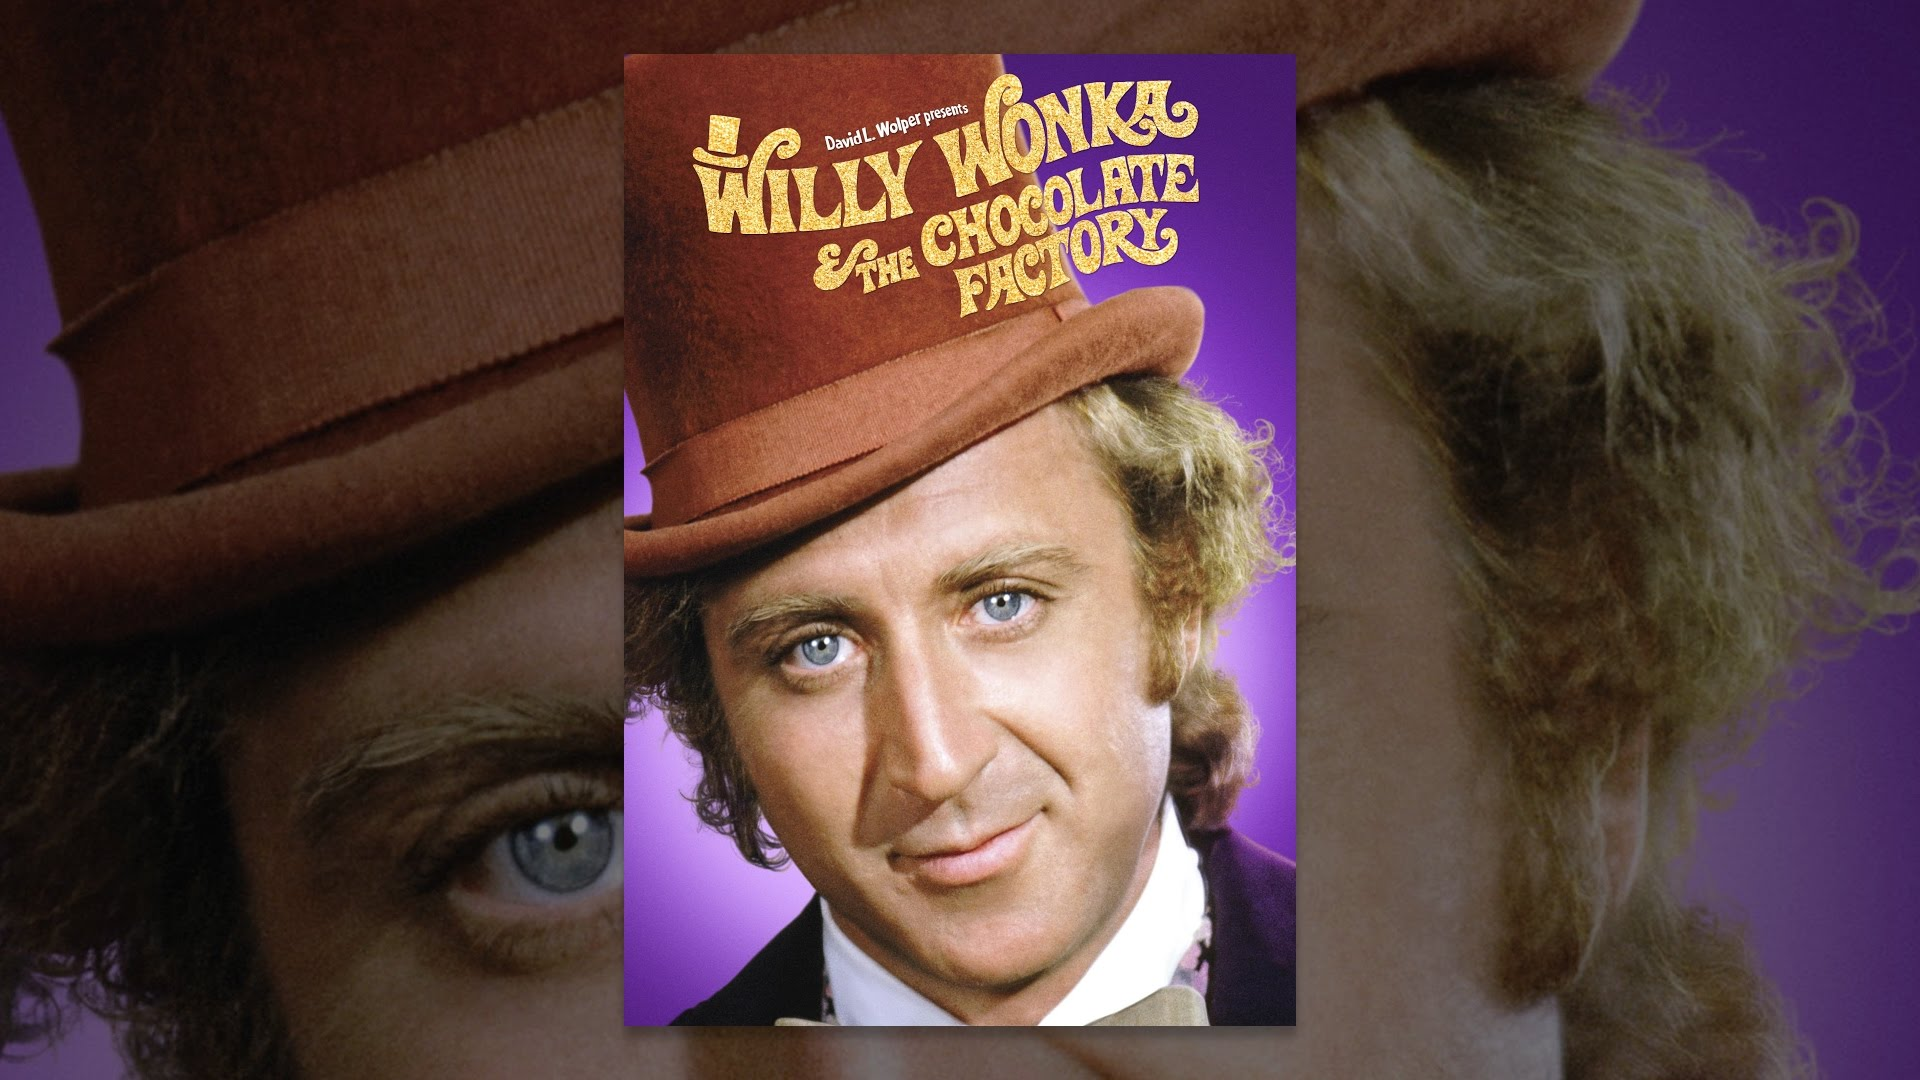 willy wonka and the chocolate factory willy wonka and the chocolate factory